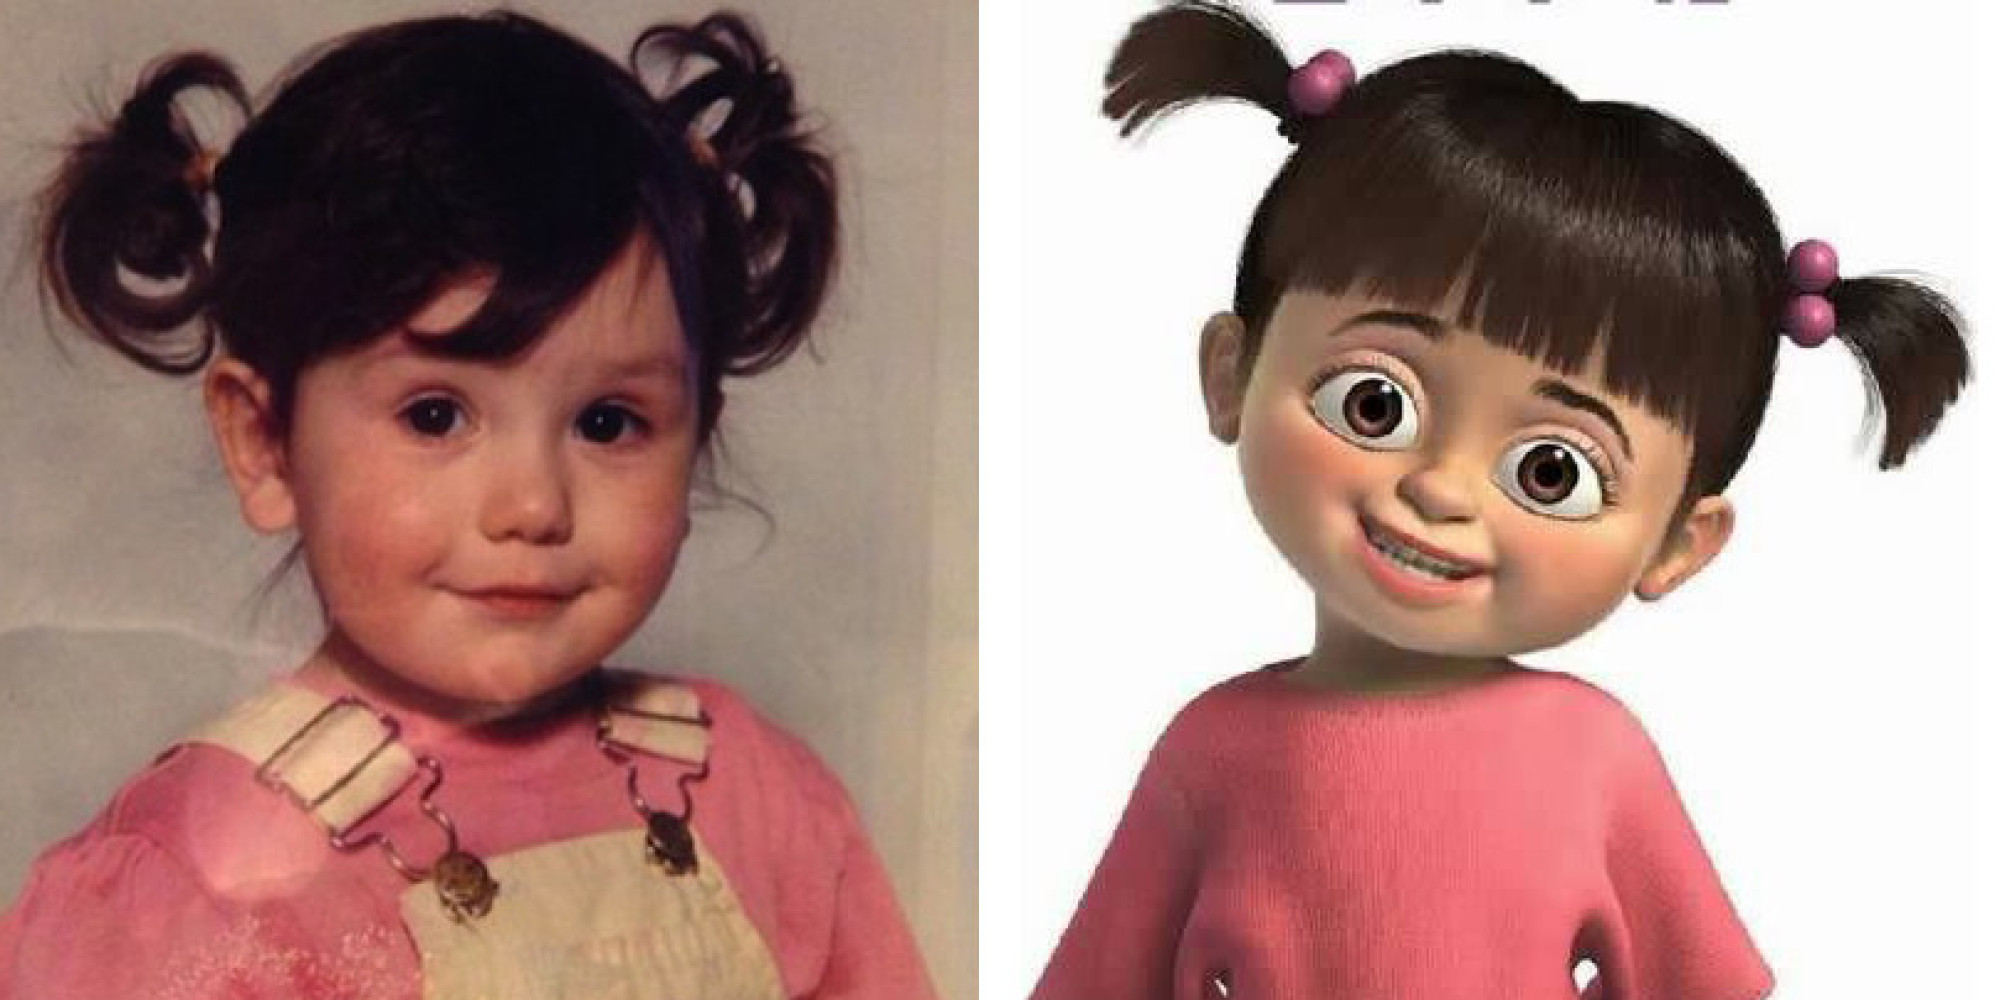 JWoww Looked Just Like Boo From 'Monsters, Inc.' When She ...